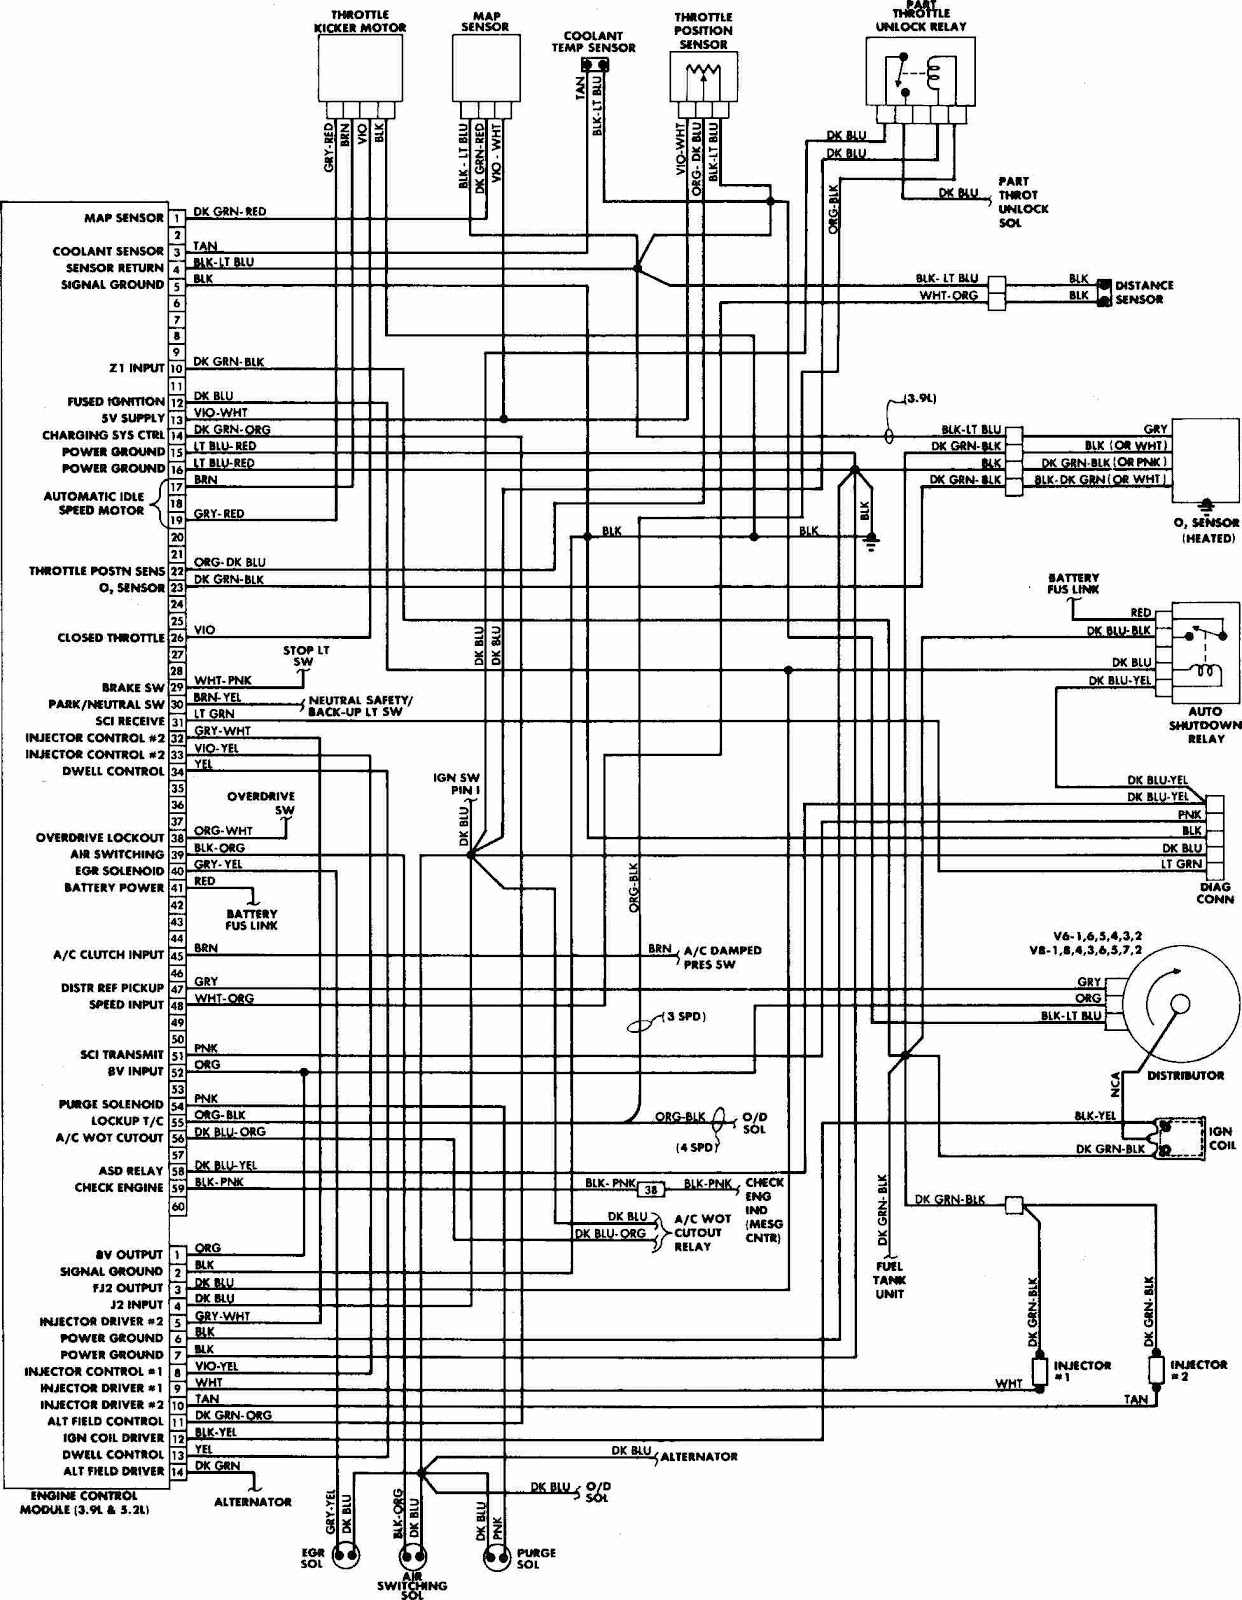 Ecm Engine Control Module Diagram Free Wiring For You Hayabusa Download Schematic Get Image Relay Buick Enclaveecm